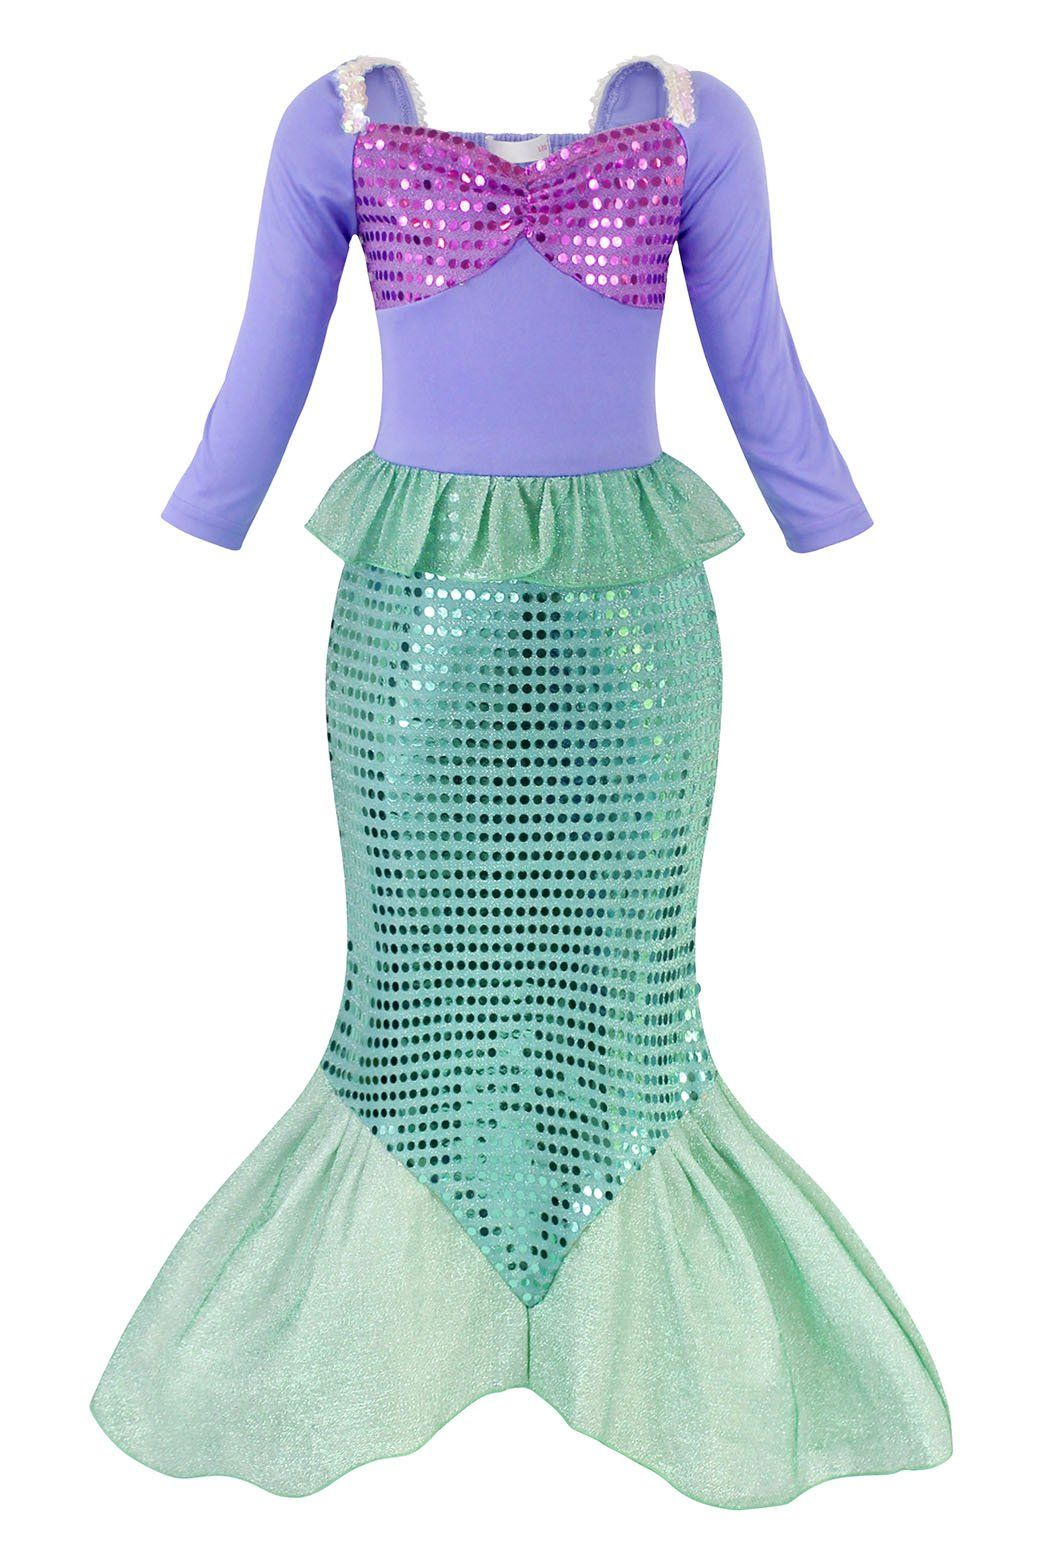 Filare Girls Sequins Little Mermaid Costume Dress Party Fancy Dress Up Long Sleeve 5t 6t 56 Yea Little Mermaid Dresses Mermaid Tail Costume Fancy Dresses Party [ 1554 x 1050 Pixel ]